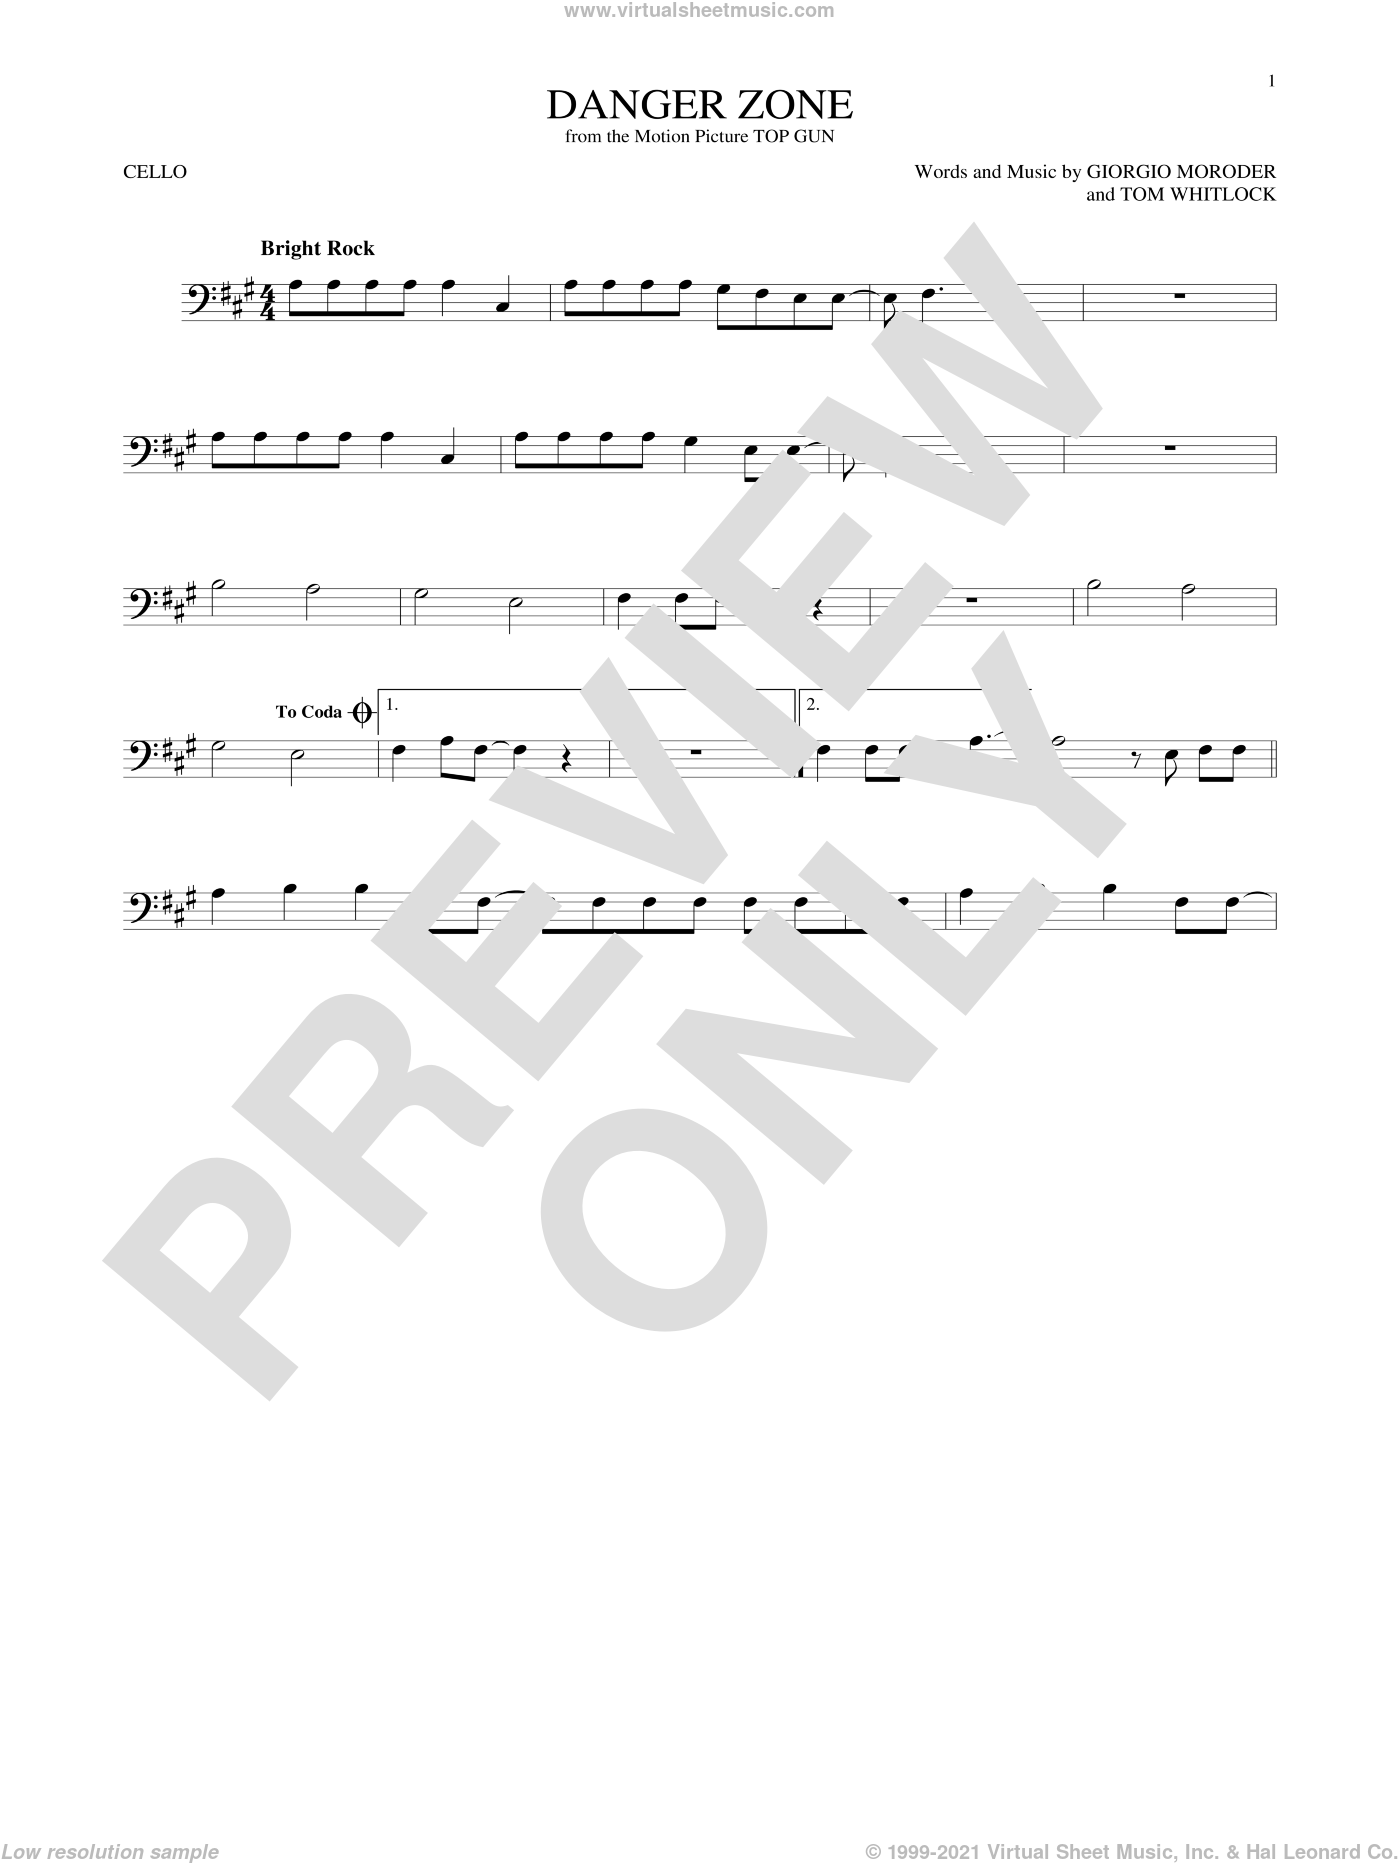 Danger Zone sheet music for cello solo by Kenny Loggins, Giorgio Moroder and Tom Whitlock, intermediate skill level